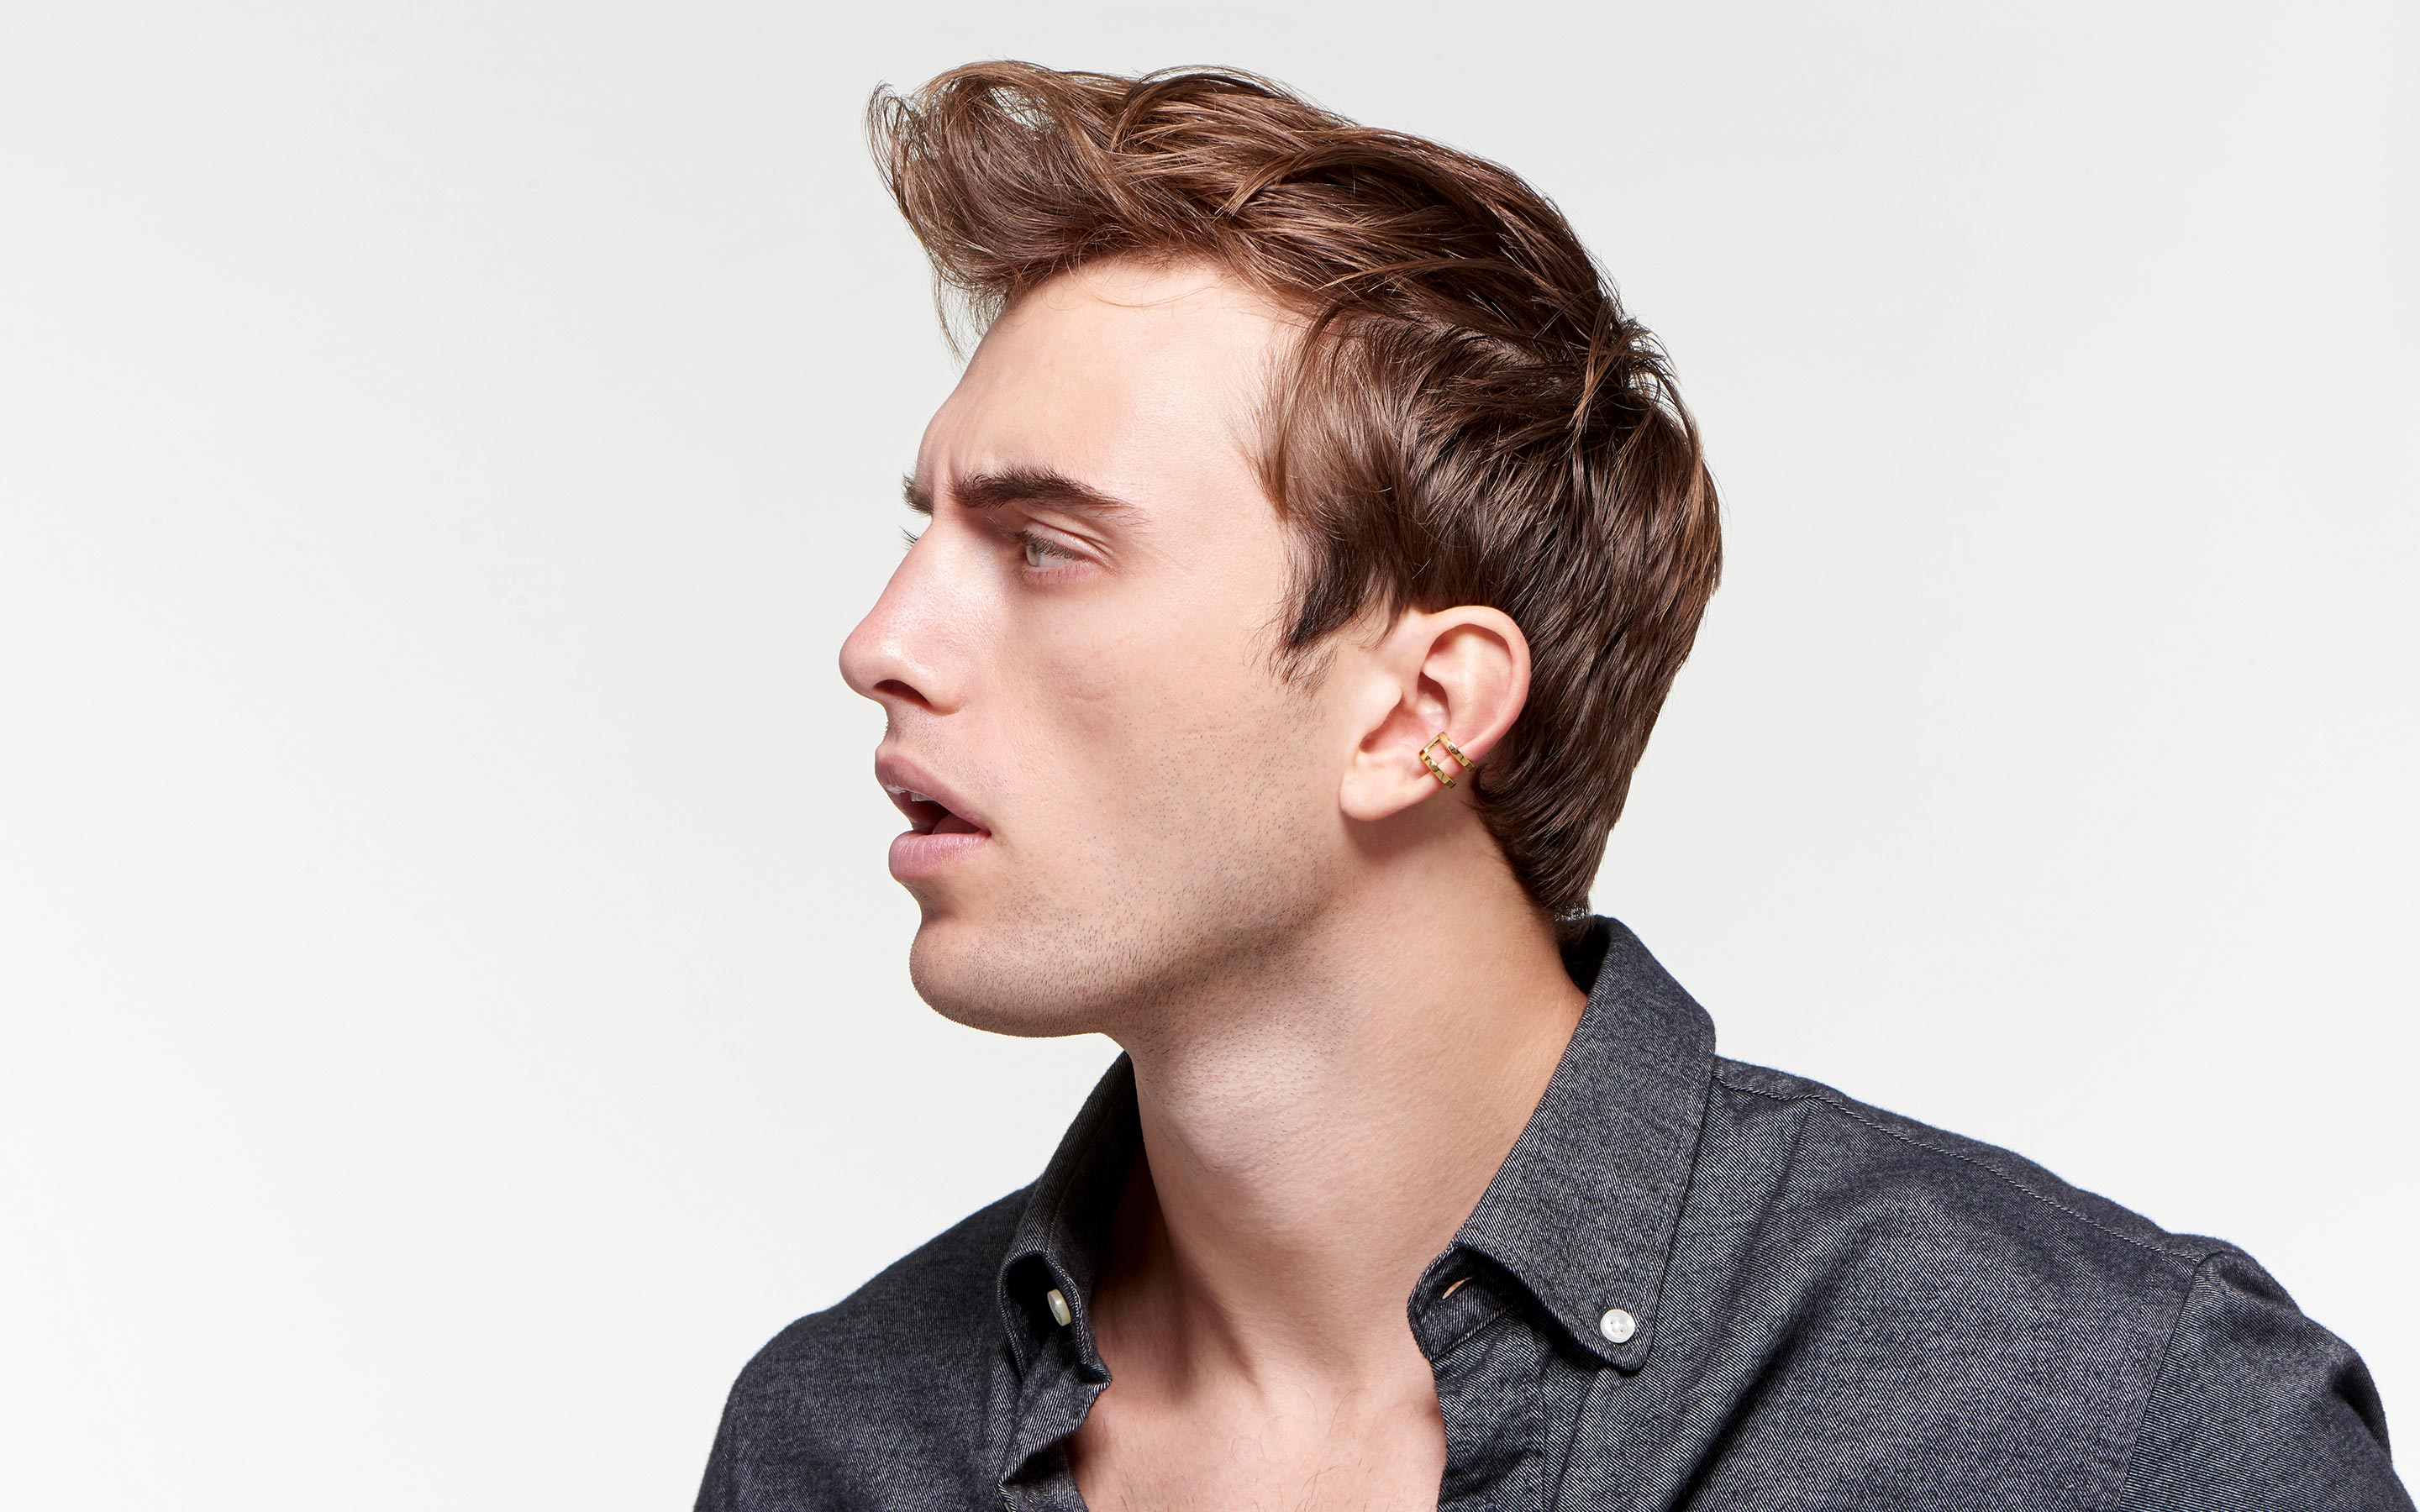 winsome male model displaying lustrous contemporary ear cuff made of 22 karat polished gold